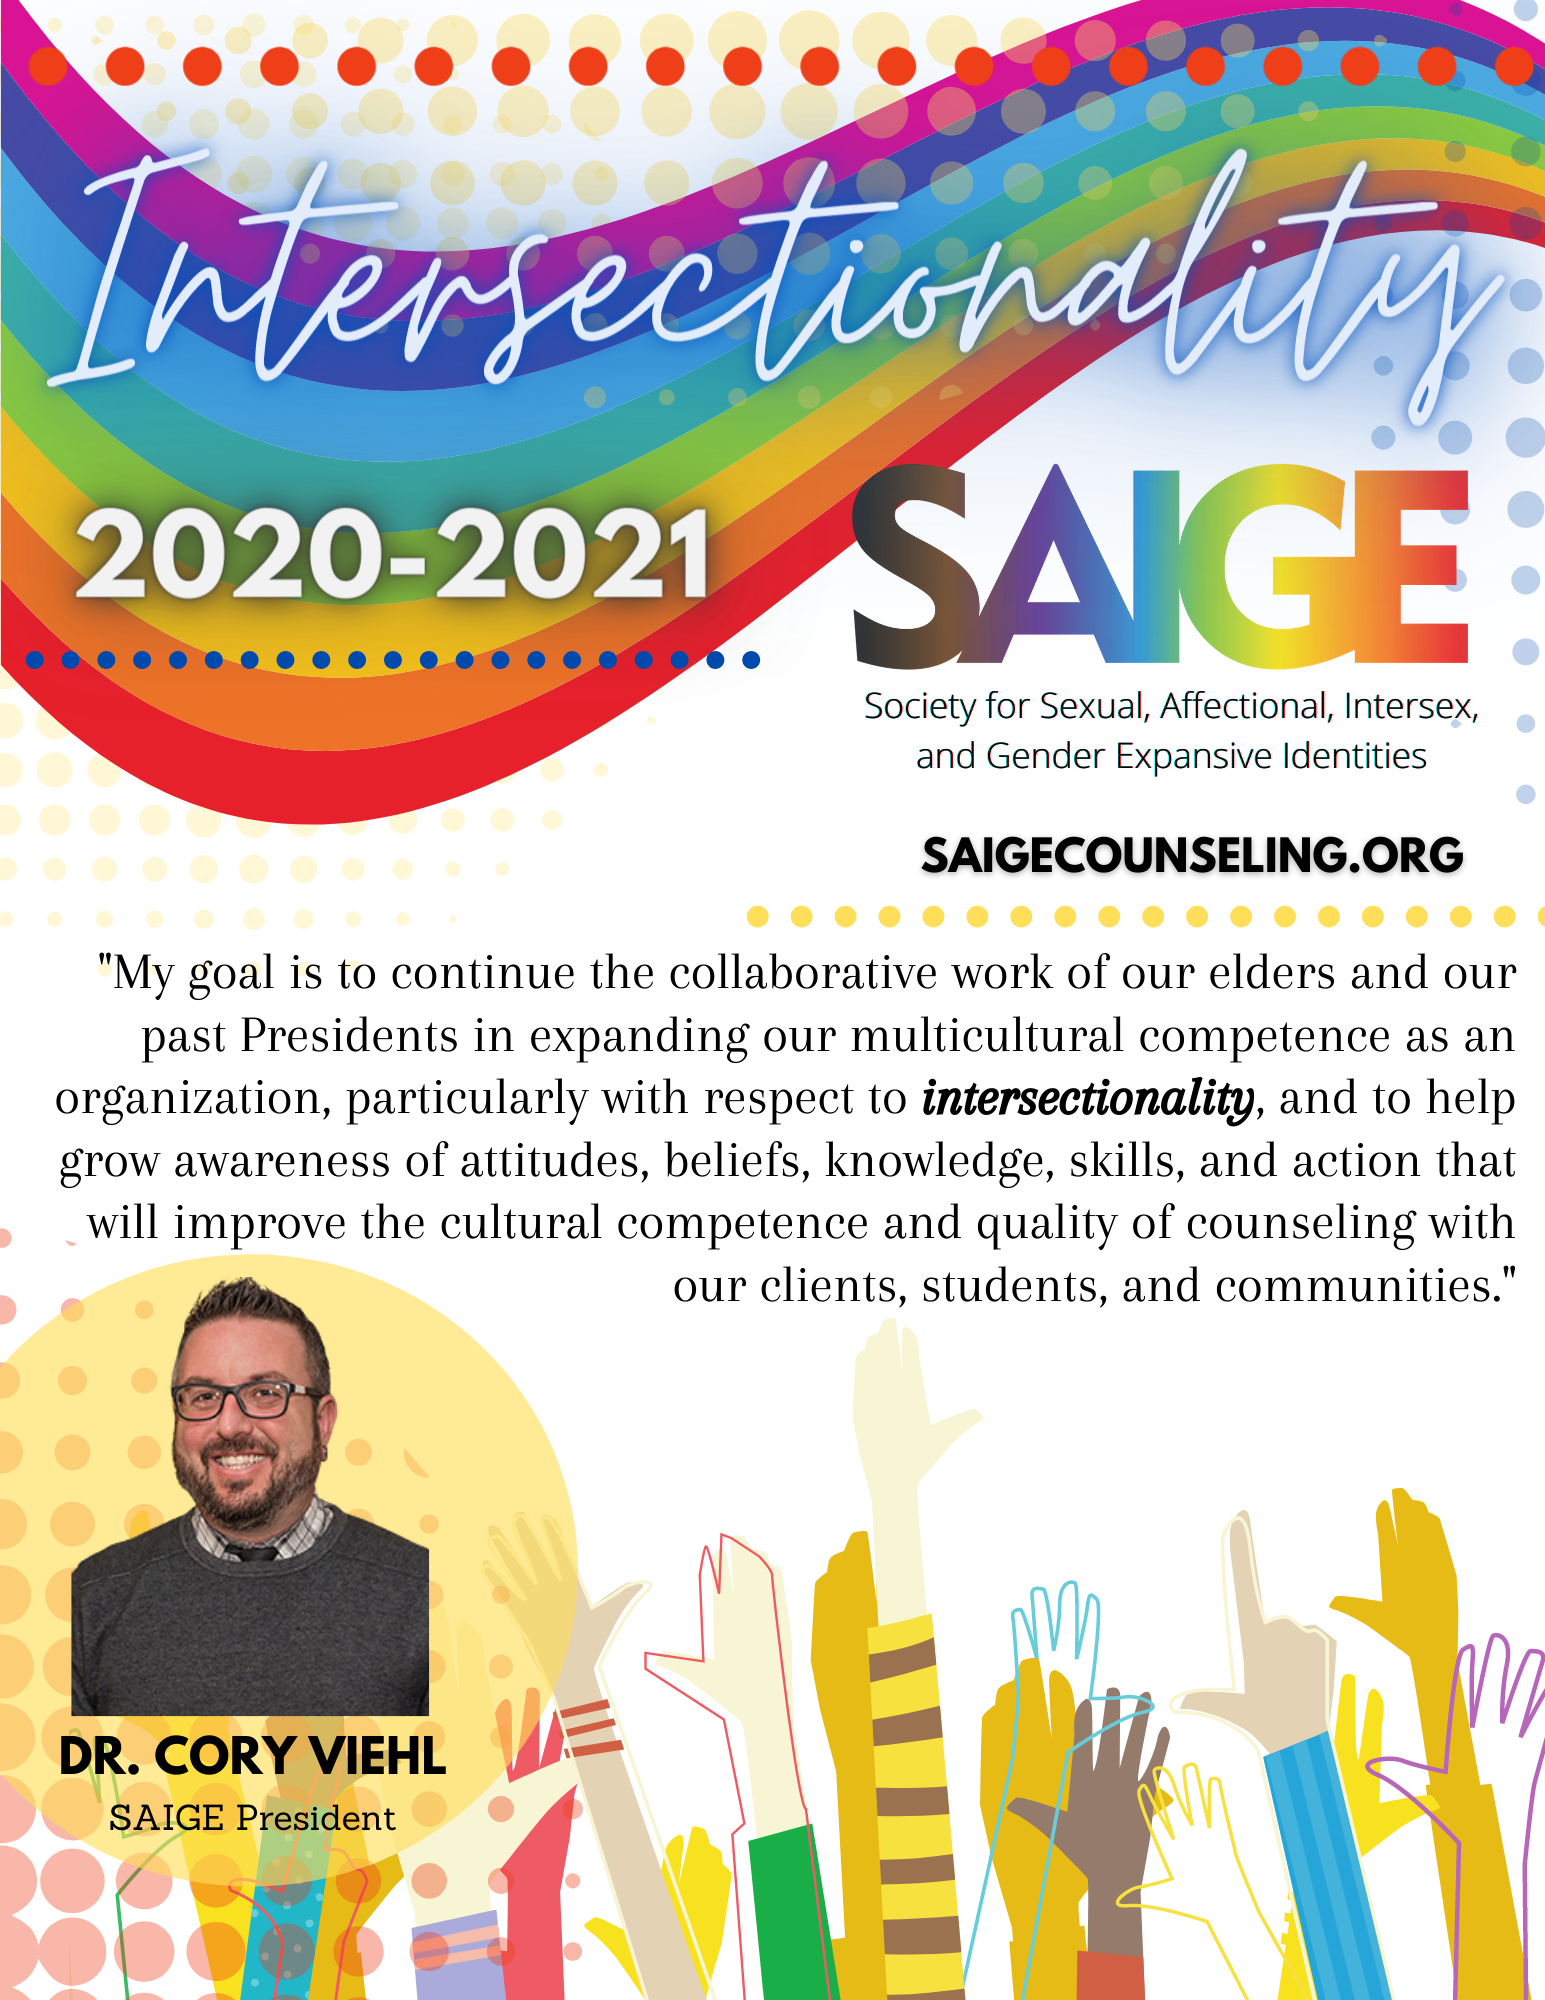 SAIGE Presidential Quote about 2020-2021 Theme of Intersectionality